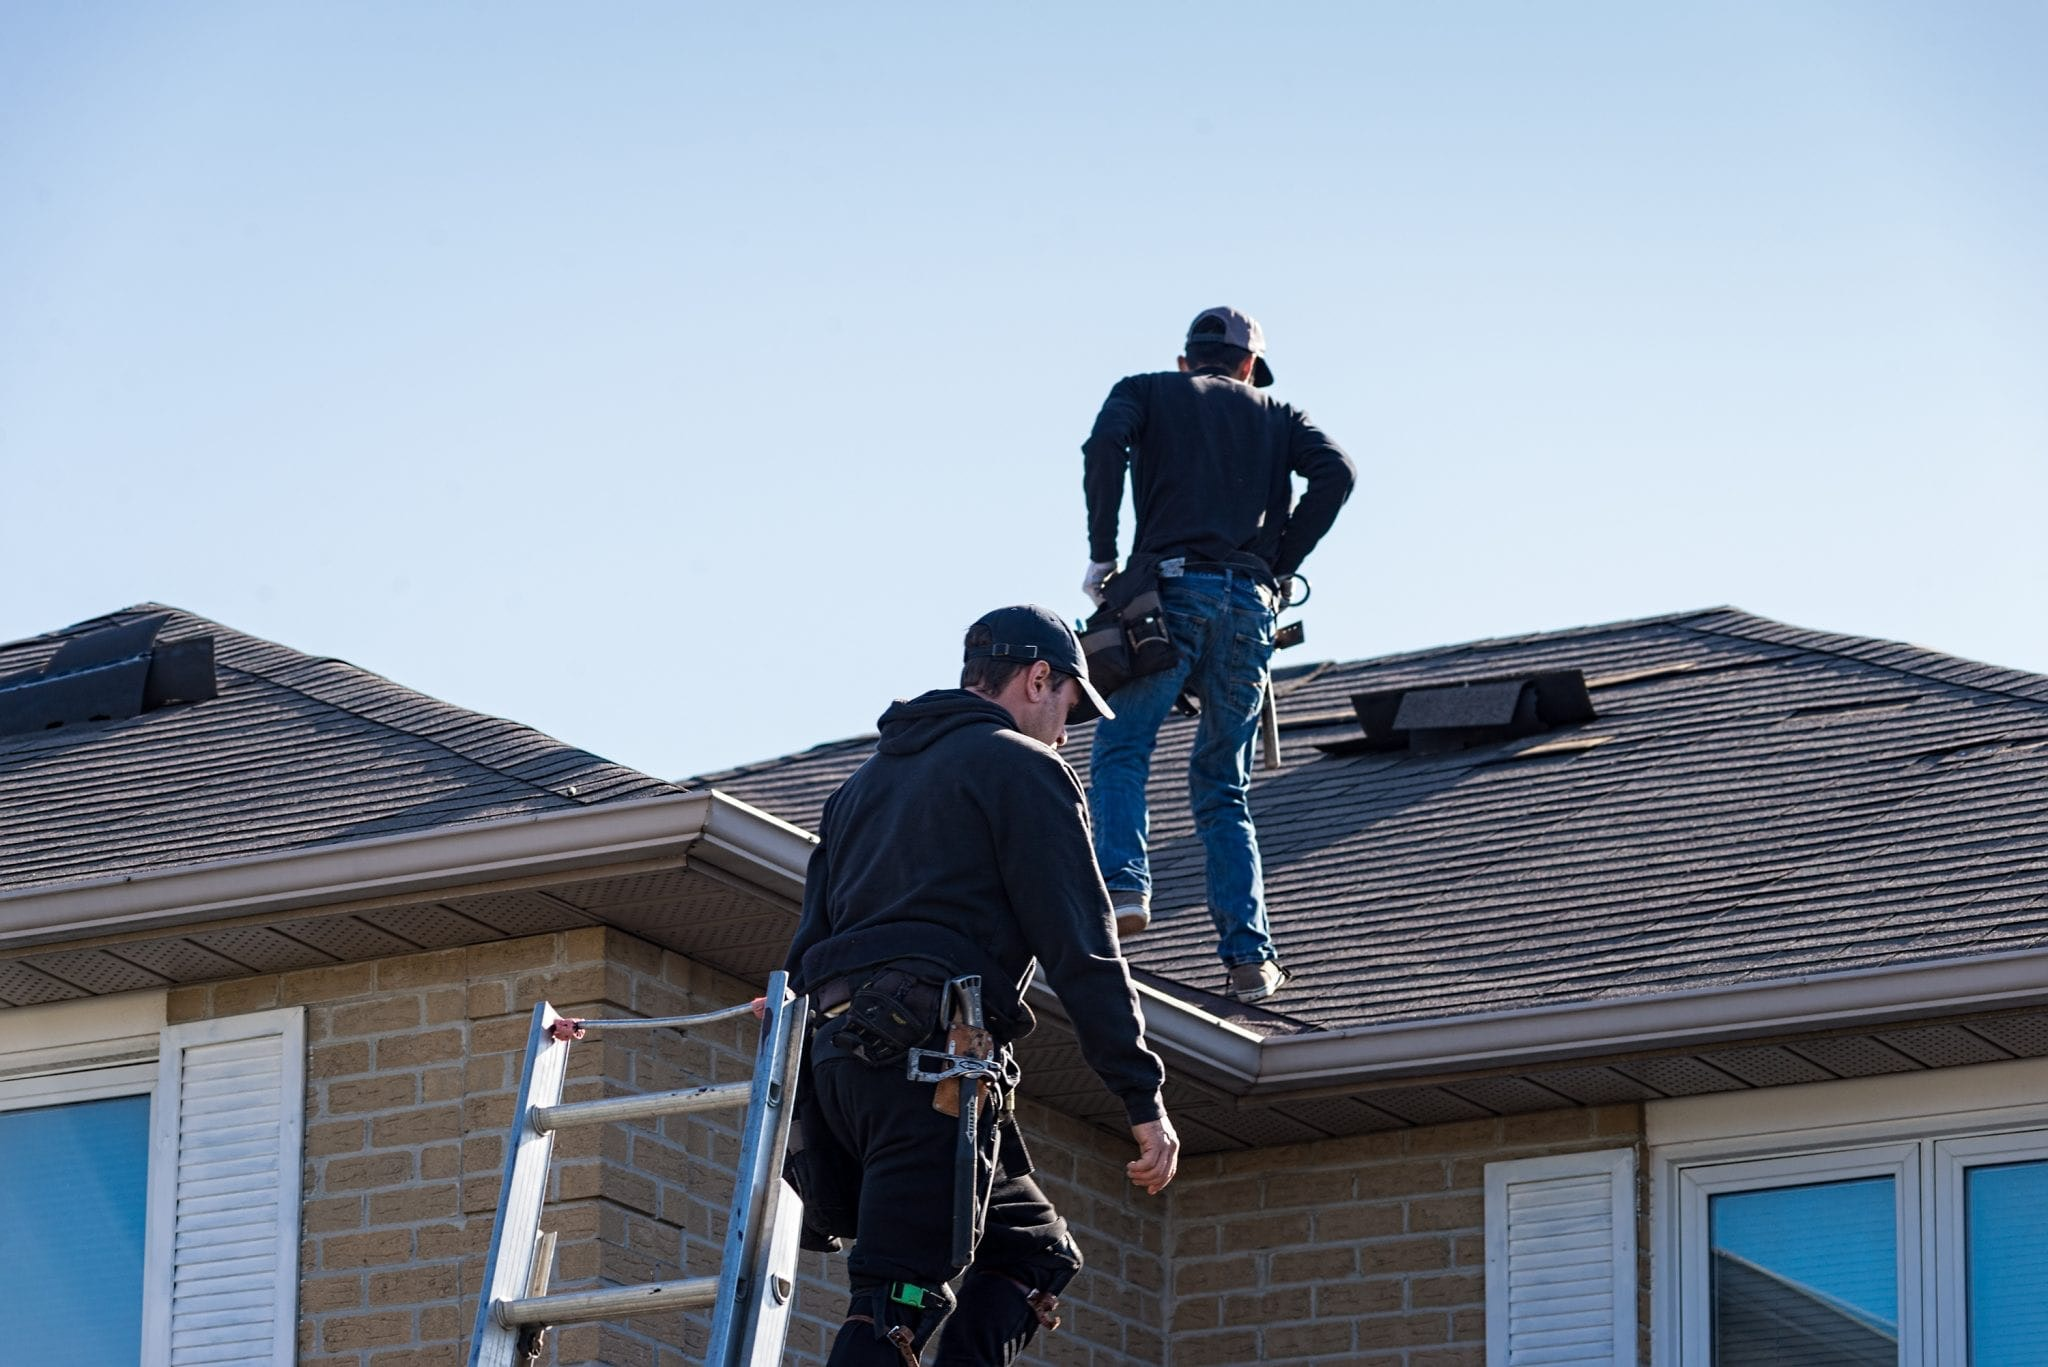 How To Get Your Homeowners Insurance To Pay For A New Roof Clever Real Estate Blog